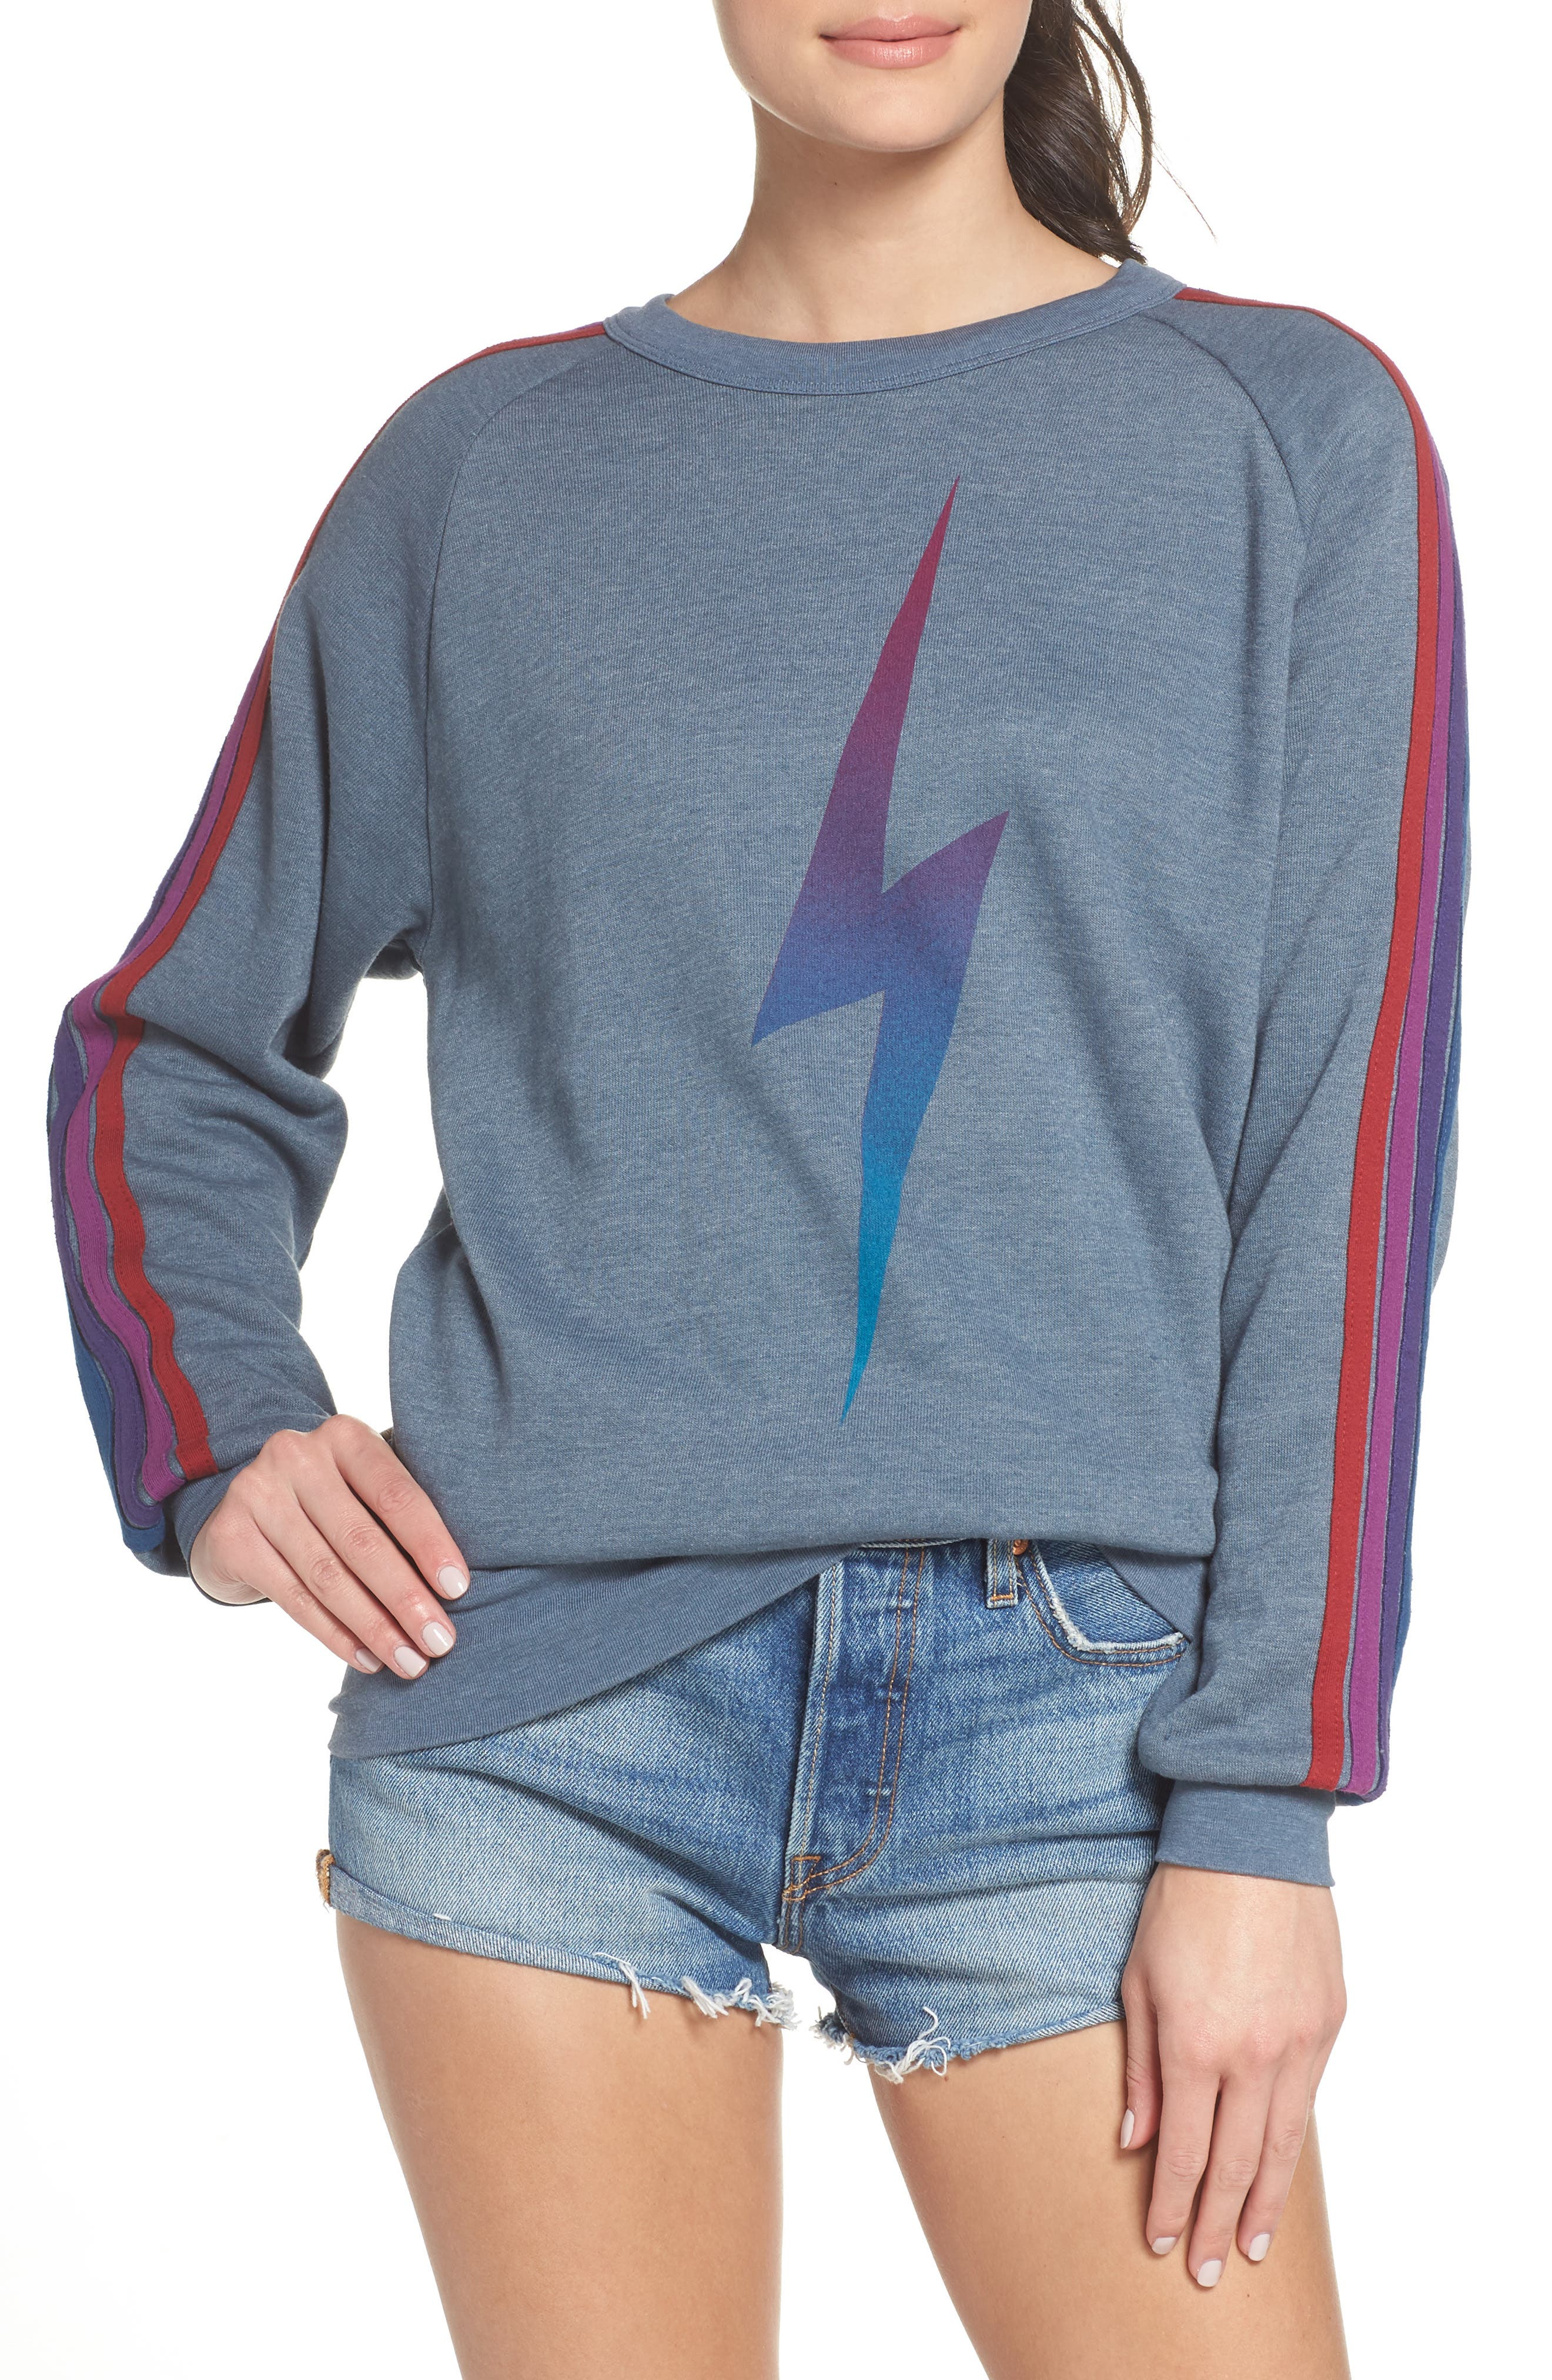 Bolt Fade Sweatshirt,                             Main thumbnail 1, color,                             SLATE/ PURPLE